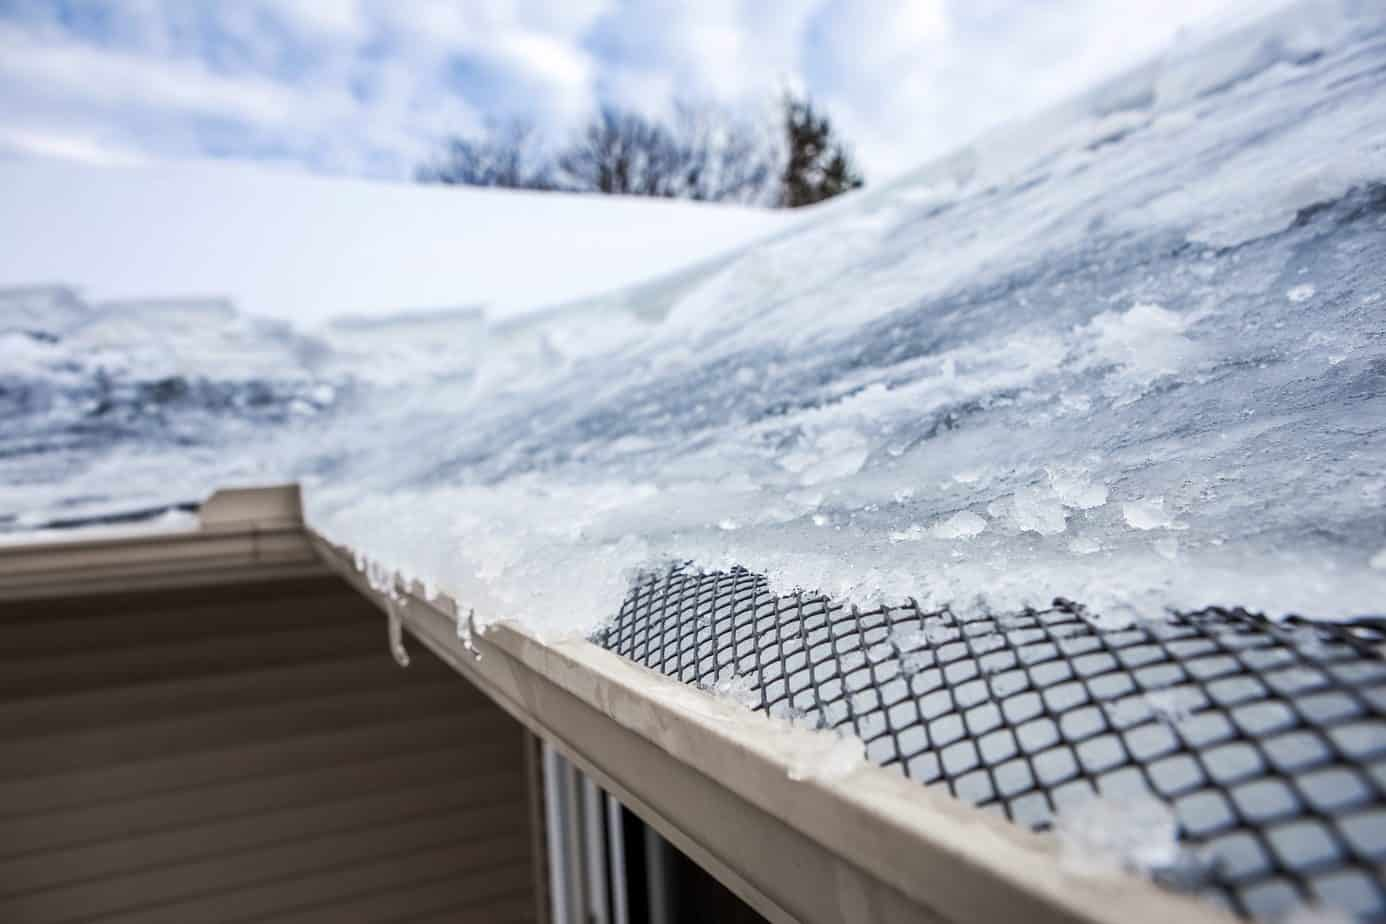 Ice covered gutters